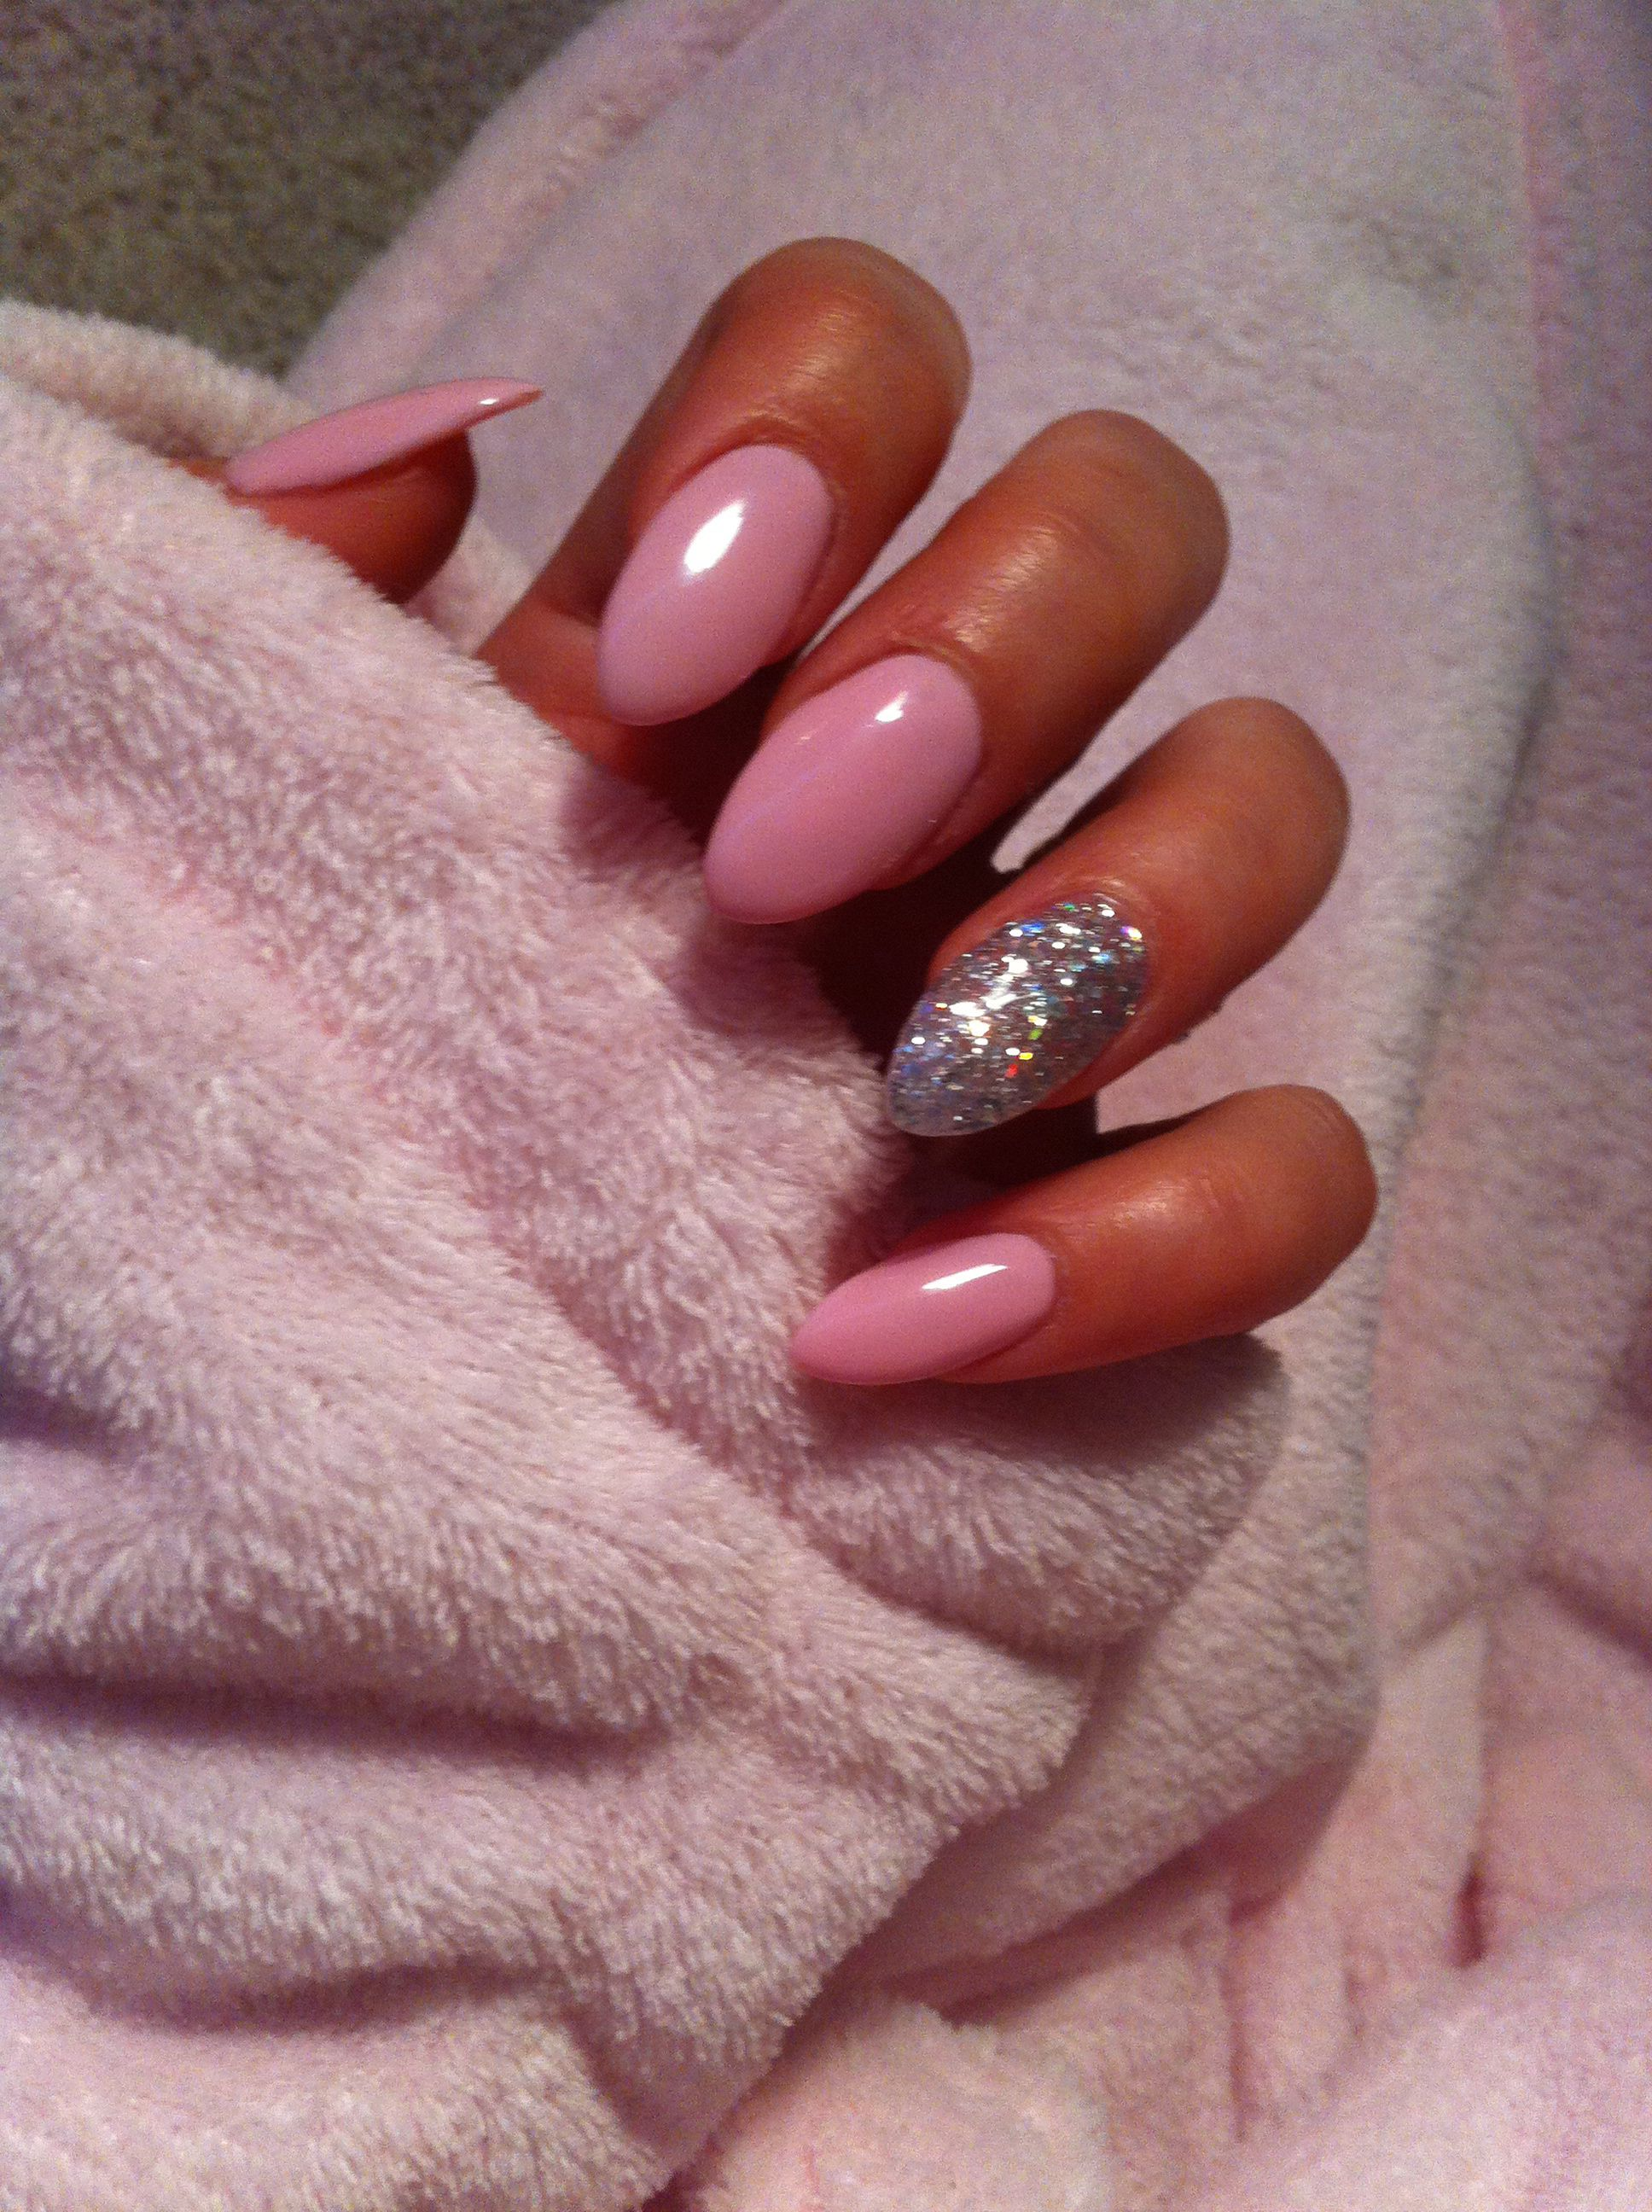 #nails #cute #pink #sparkles